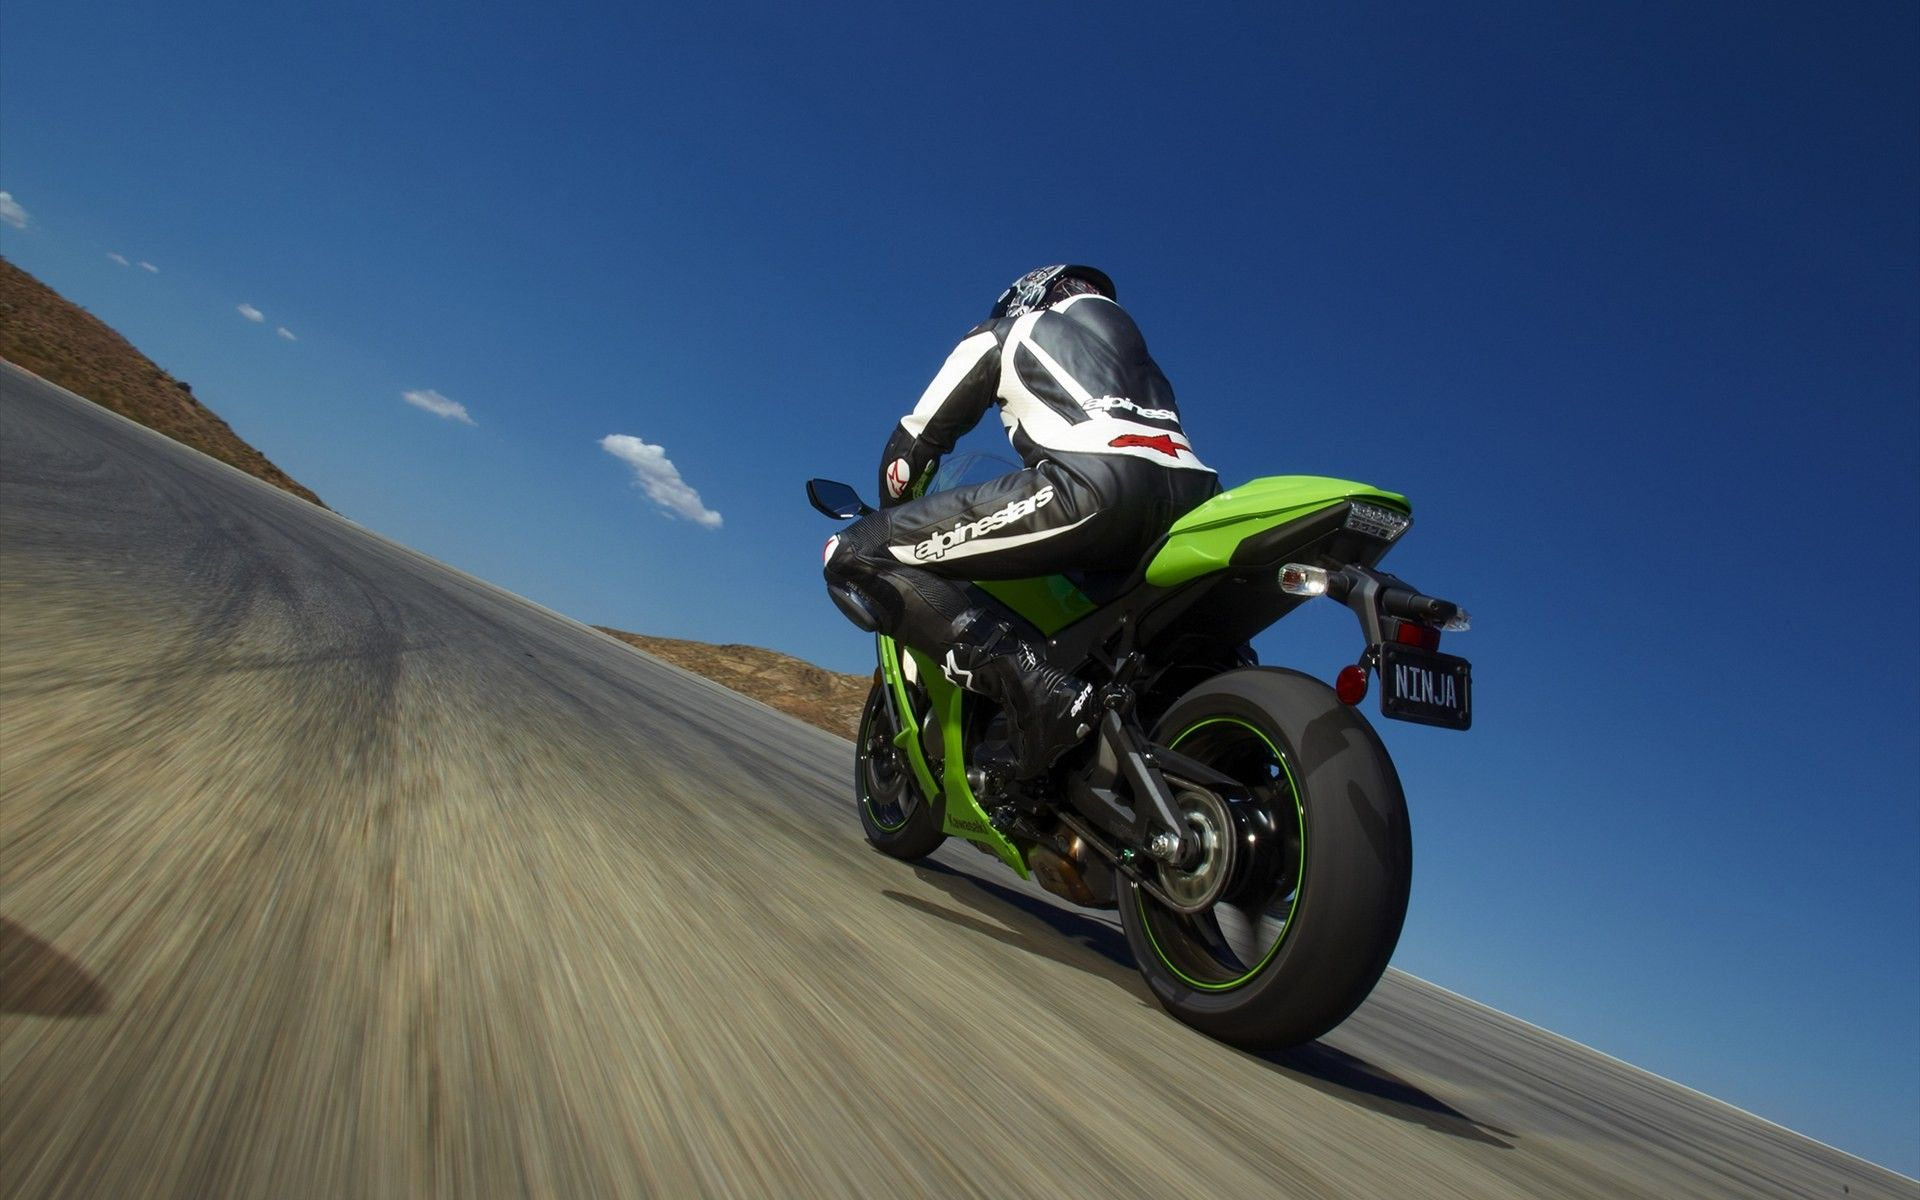 Kawasaki Ninja Wallpaper HD